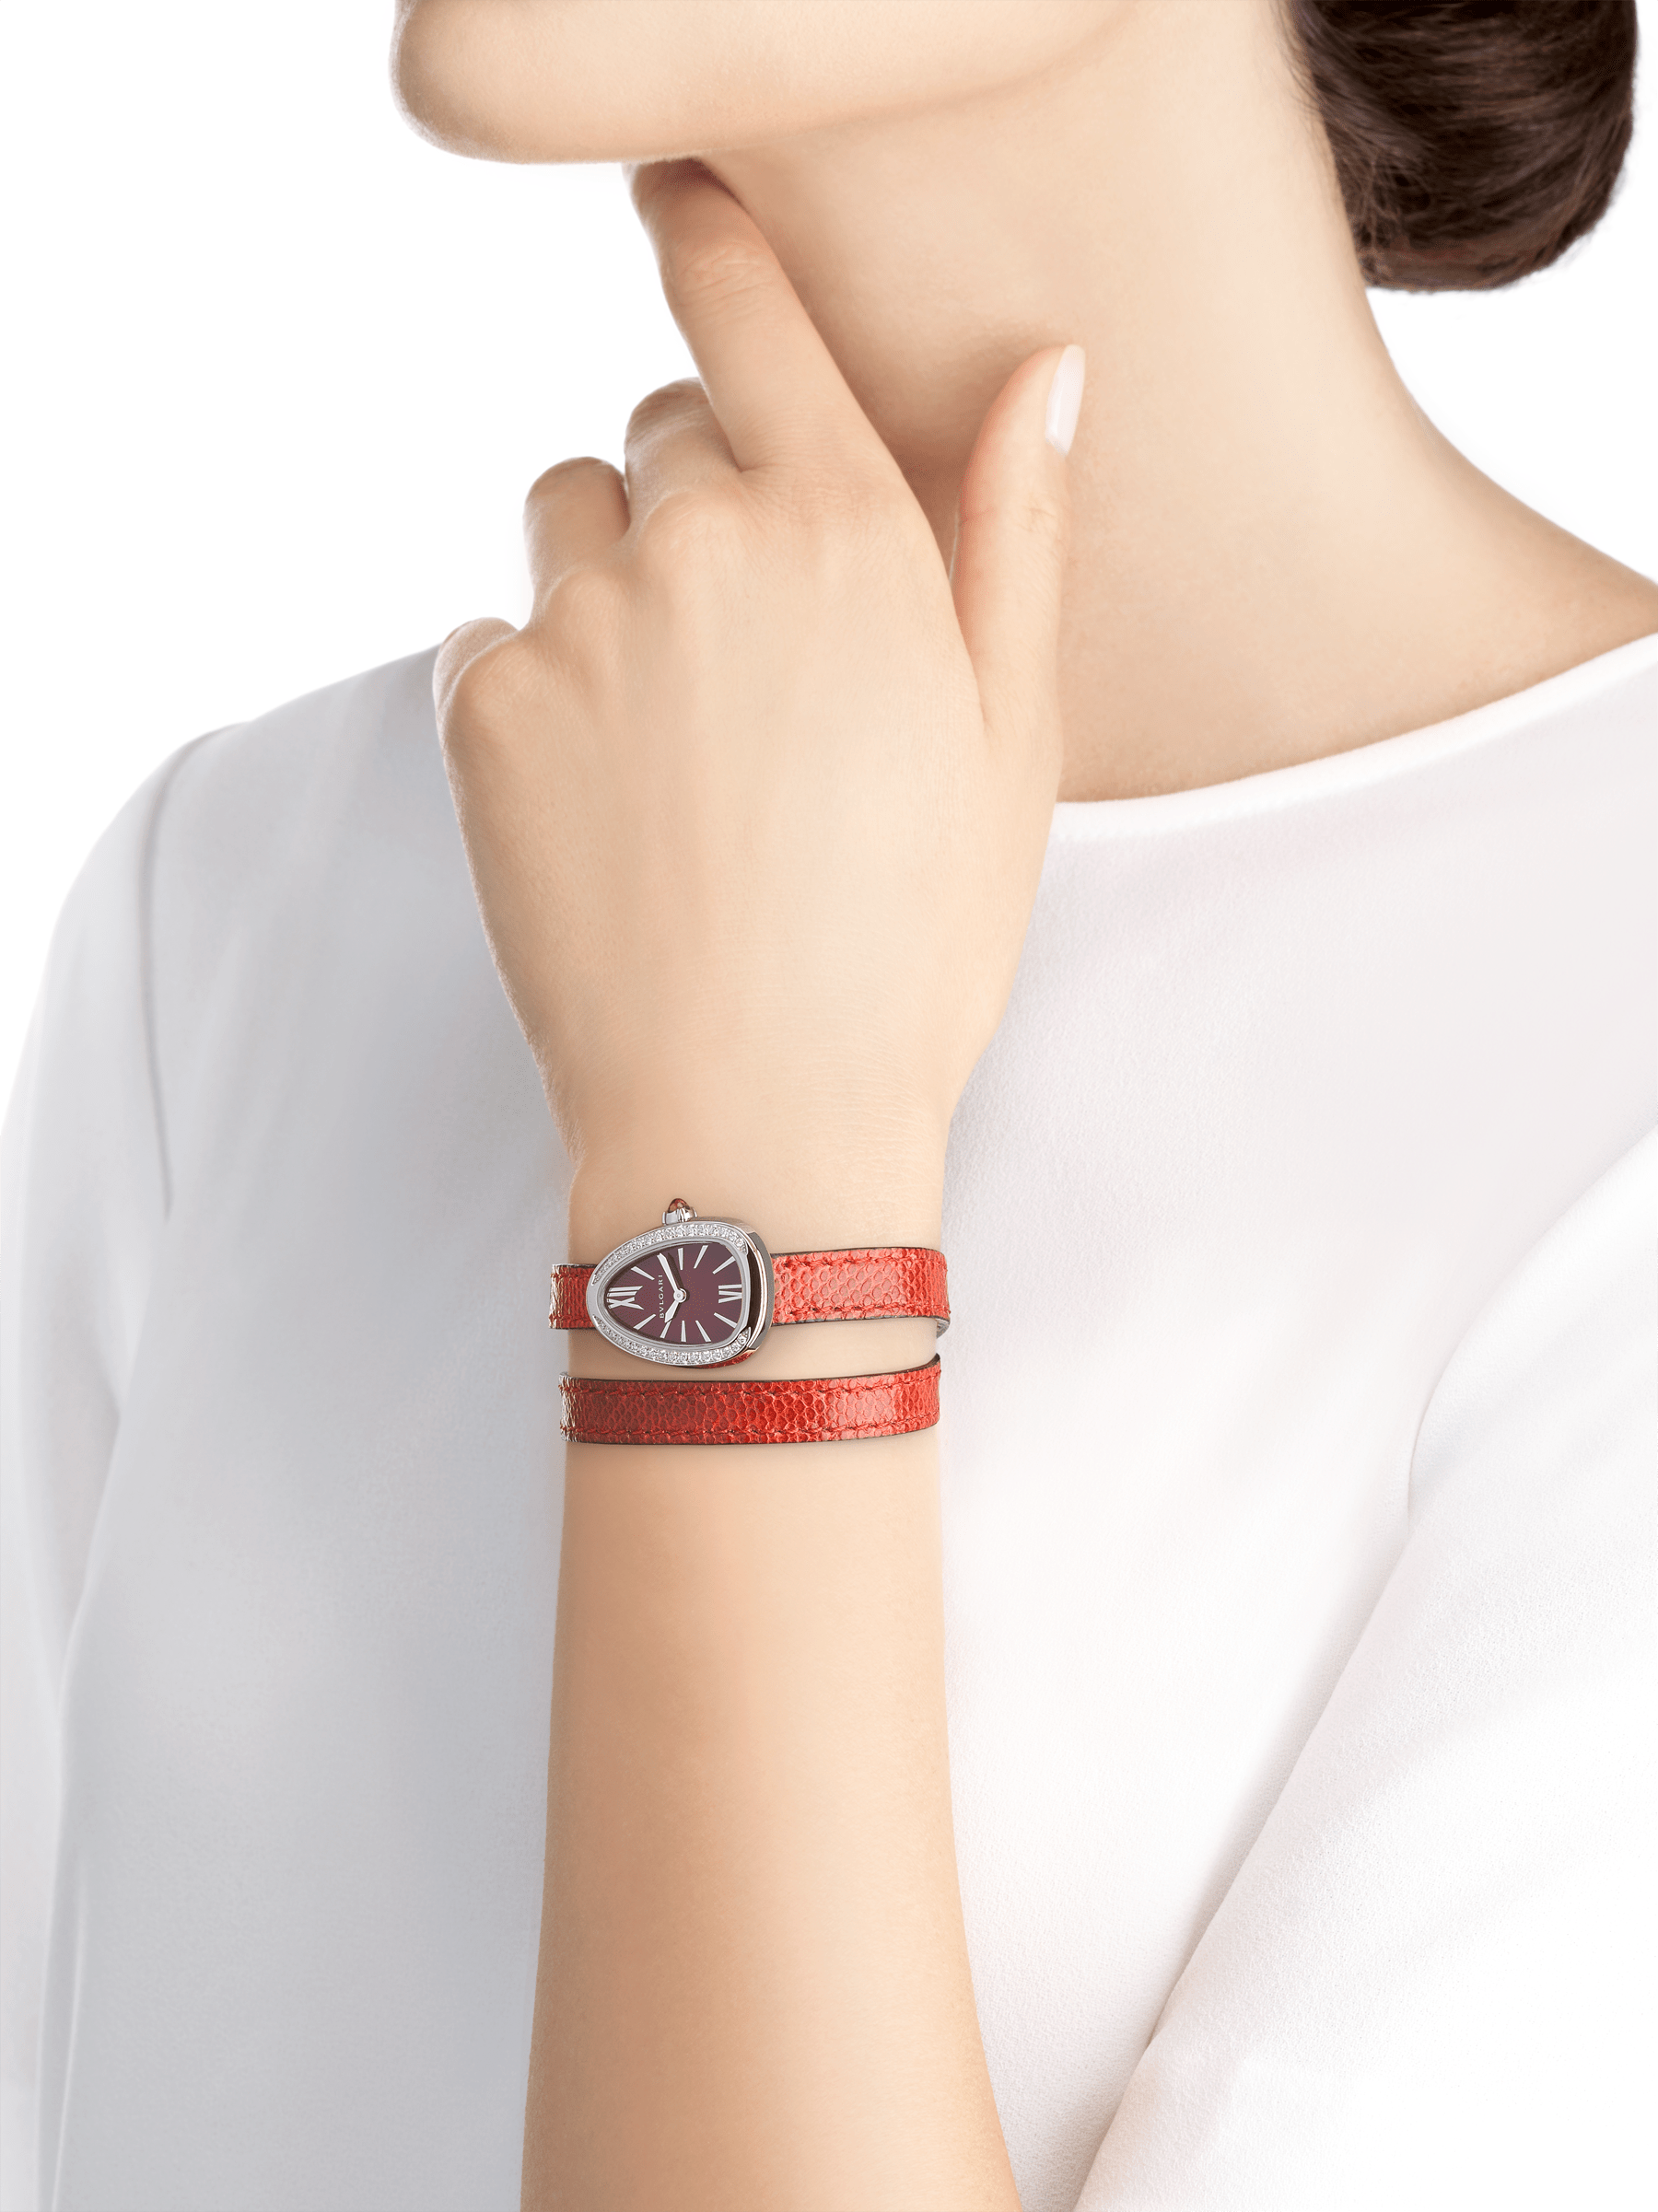 Serpenti watch with stainless steel case set with diamonds, red lacquered dial and interchangeable double spiral bracelet in red karung leather. 102780 image 4